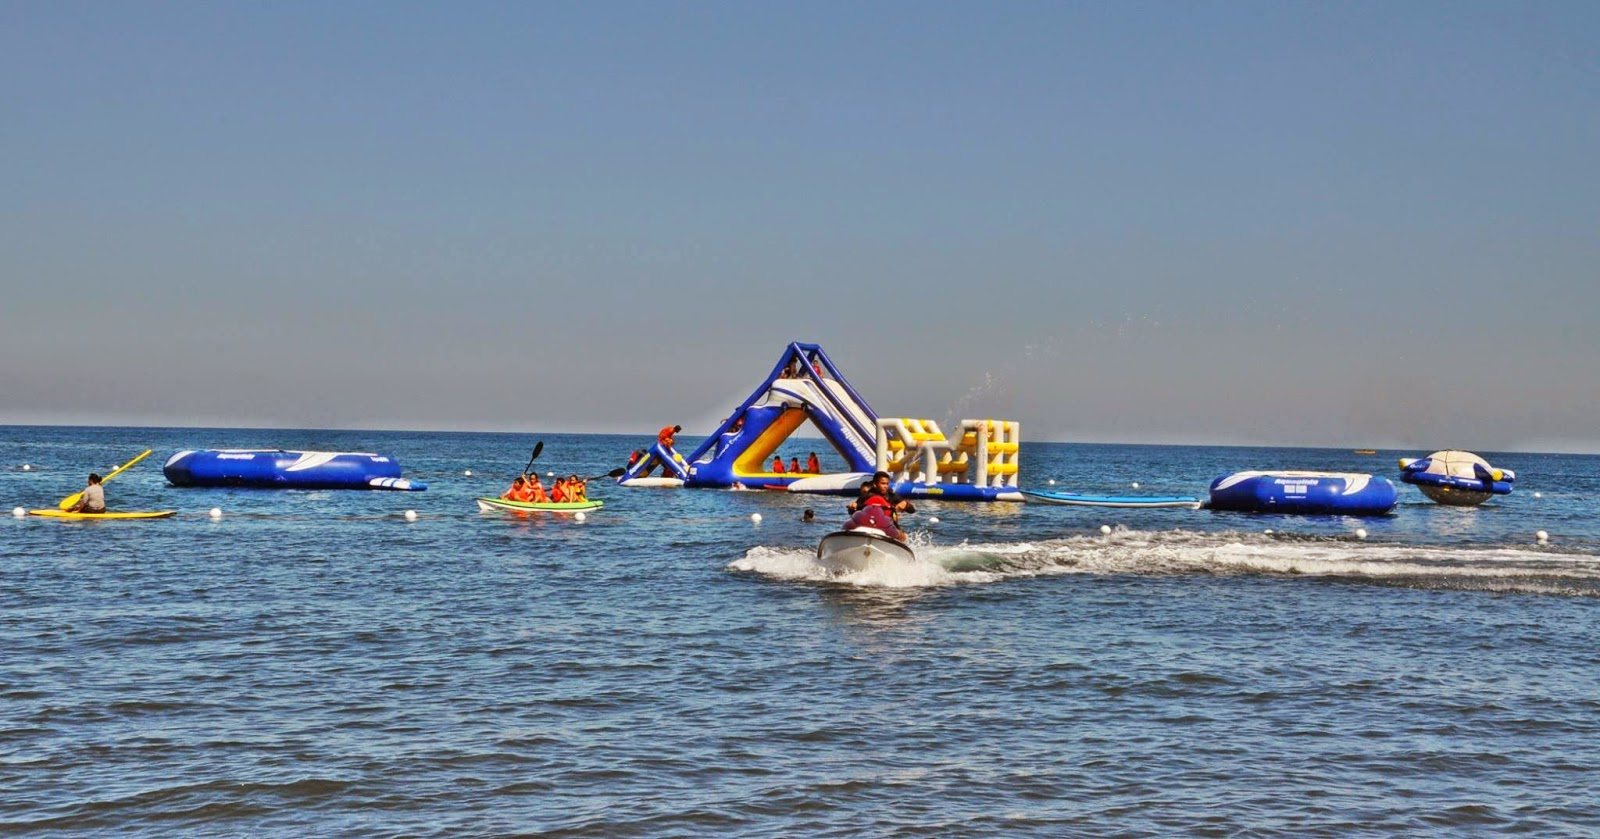 Aqua Park Del Carmen Beach Resort Located In Lagonglong Misamis Oriental Is The Newest Hang Out And Summer Destination In The Province